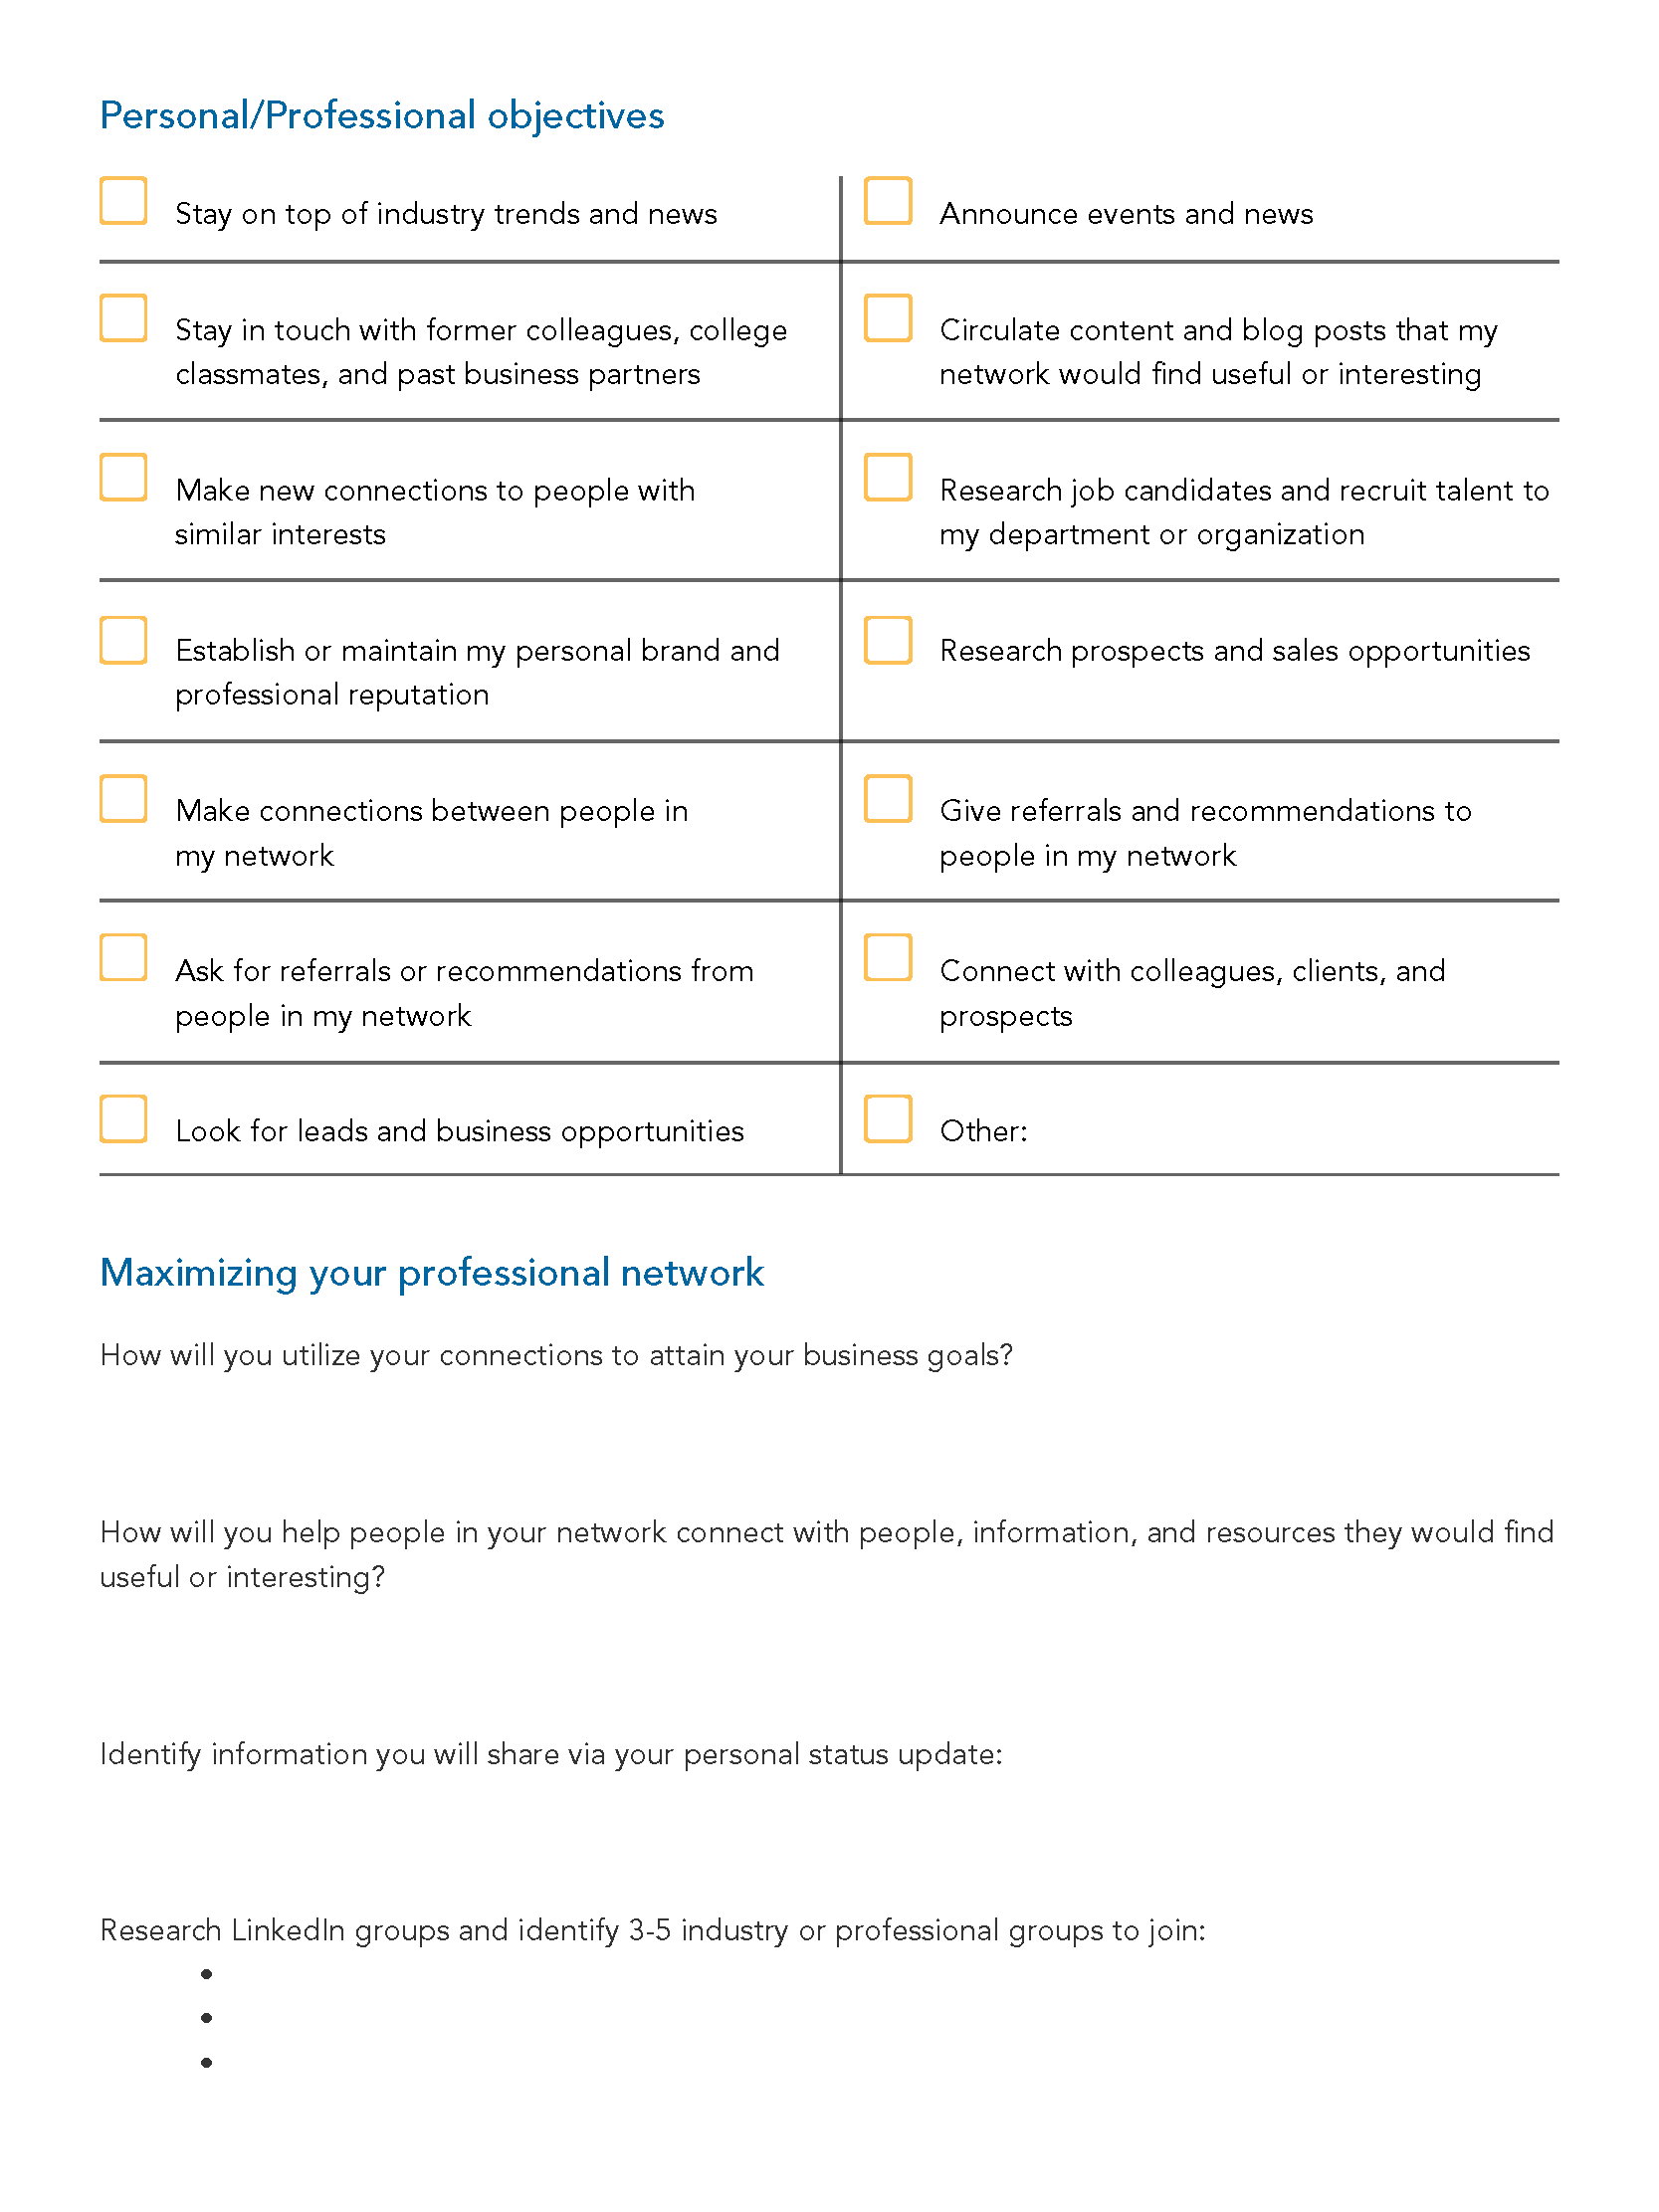 LinkedIn Strategy Worksheet - Page 3